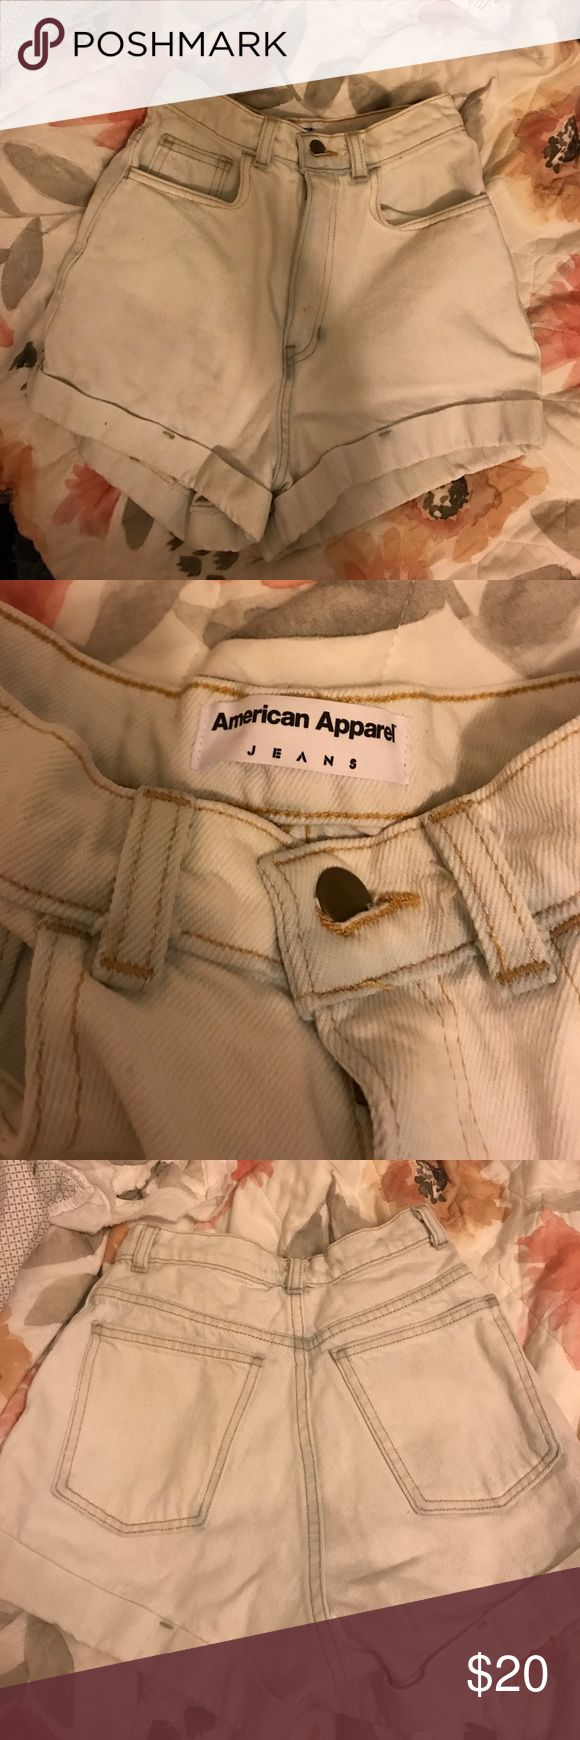 High waisted American Apparel jean shorts American apparel high waisted jean shorts American Apparel Shorts Jean Shorts